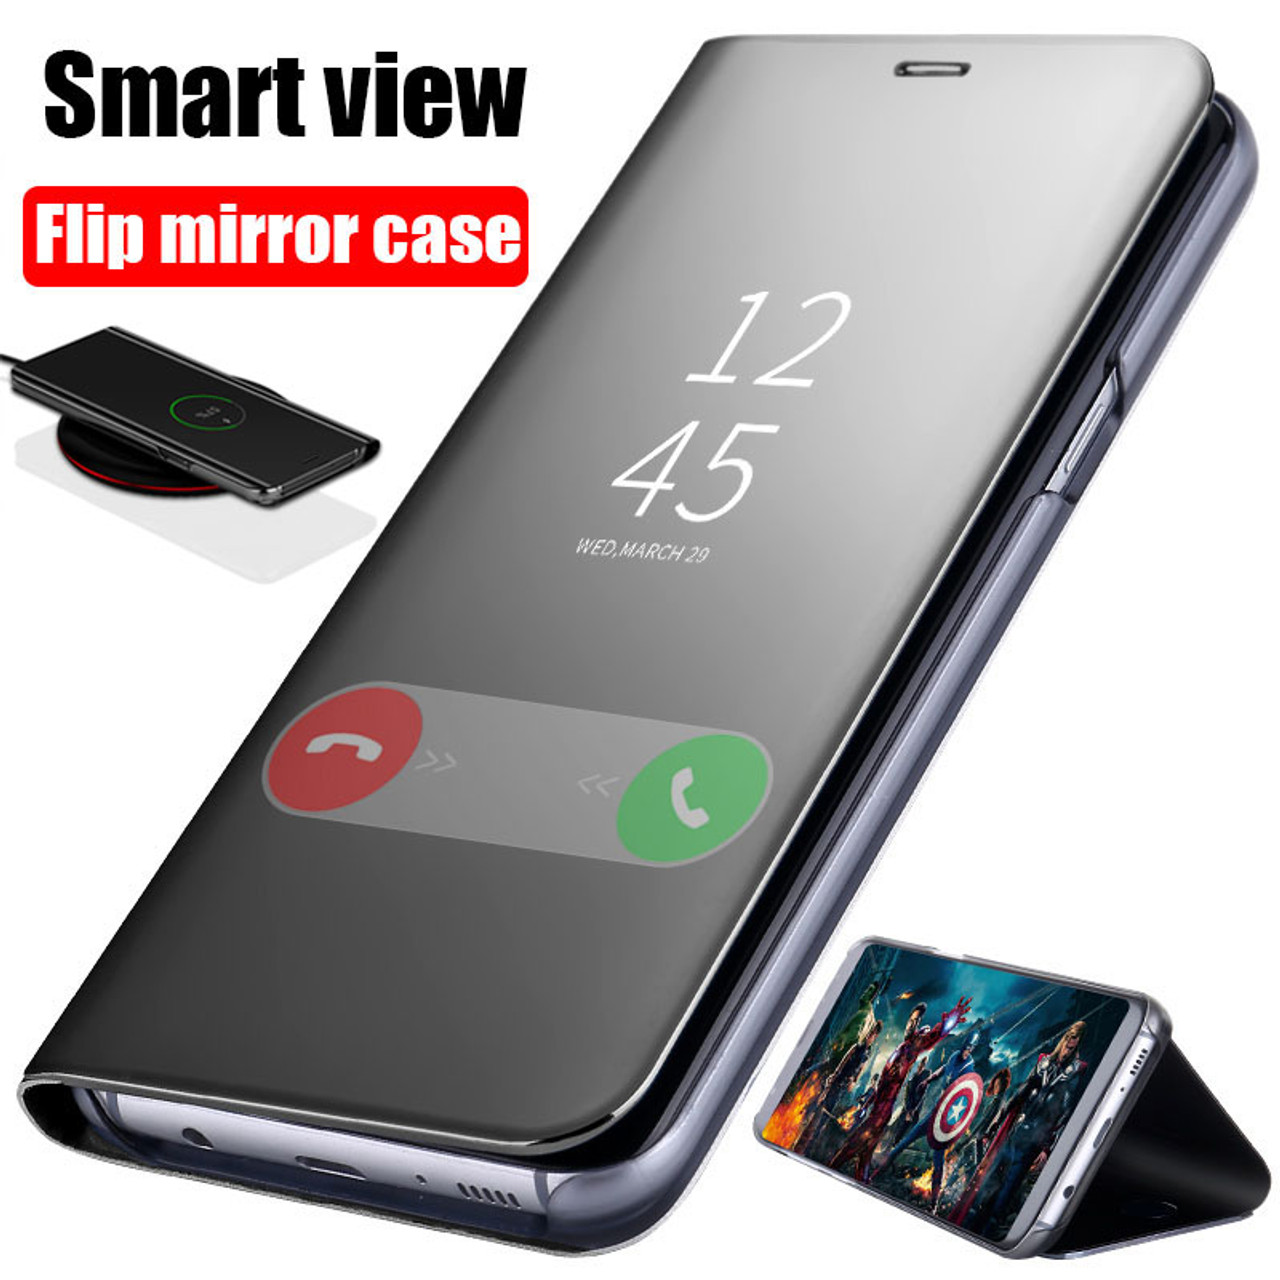 f1e4937c4 Clear View Mirror Flip Phone Case For Samsung Galaxy S8 S9 Plus S7 edge  Full Cover ...